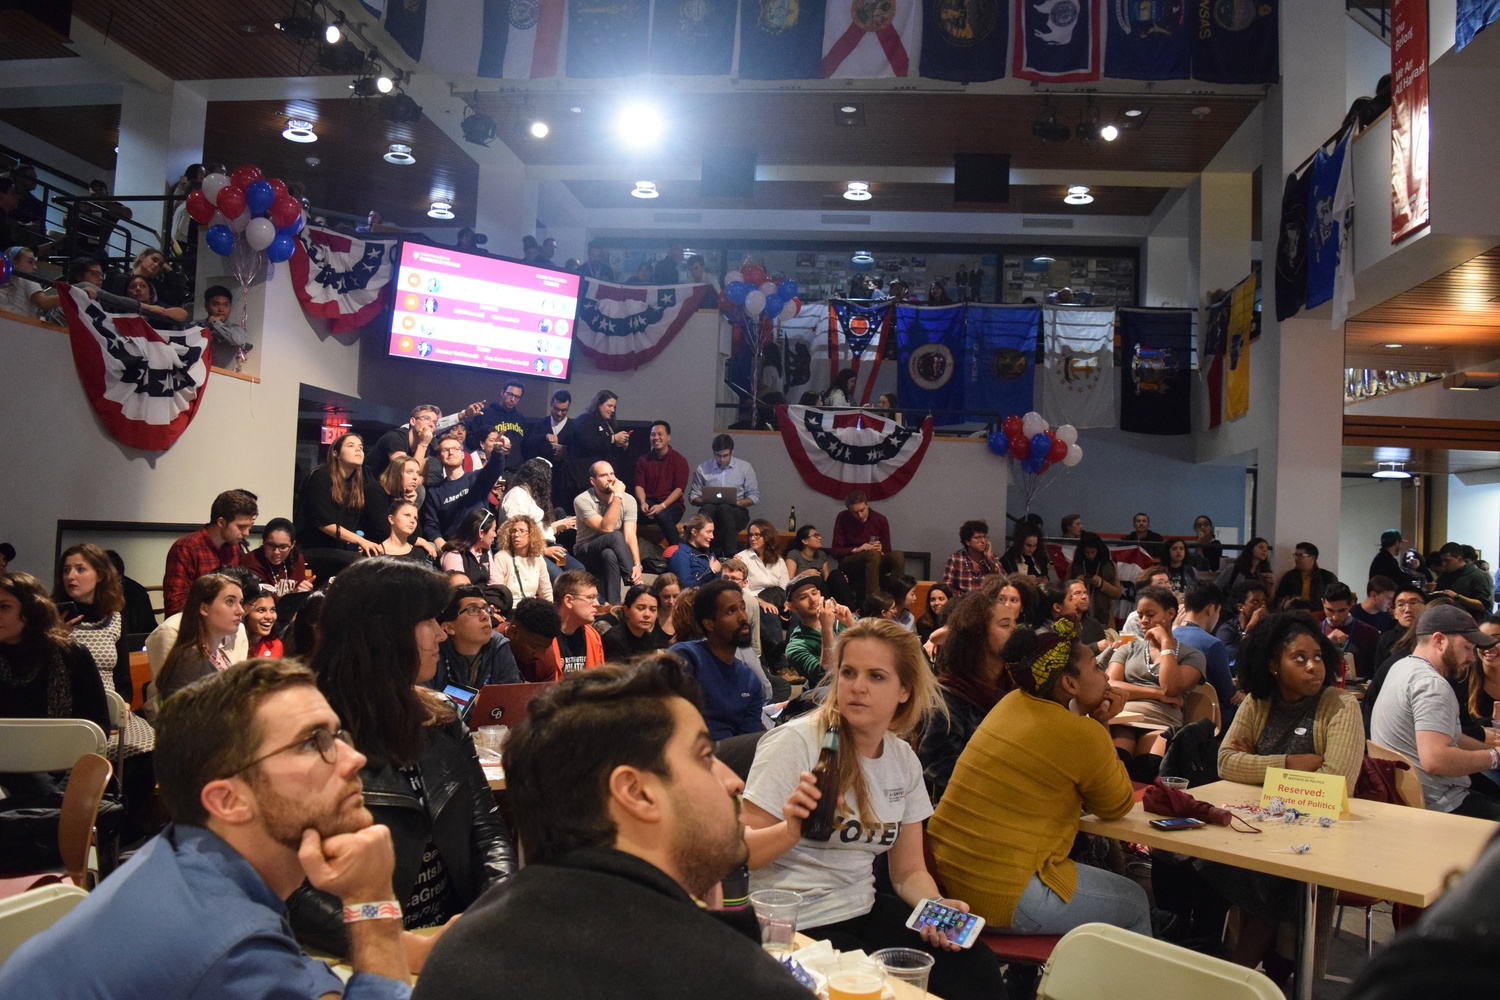 Students gather for an election night watch party held at the Institute of Politics on Tuesday night.